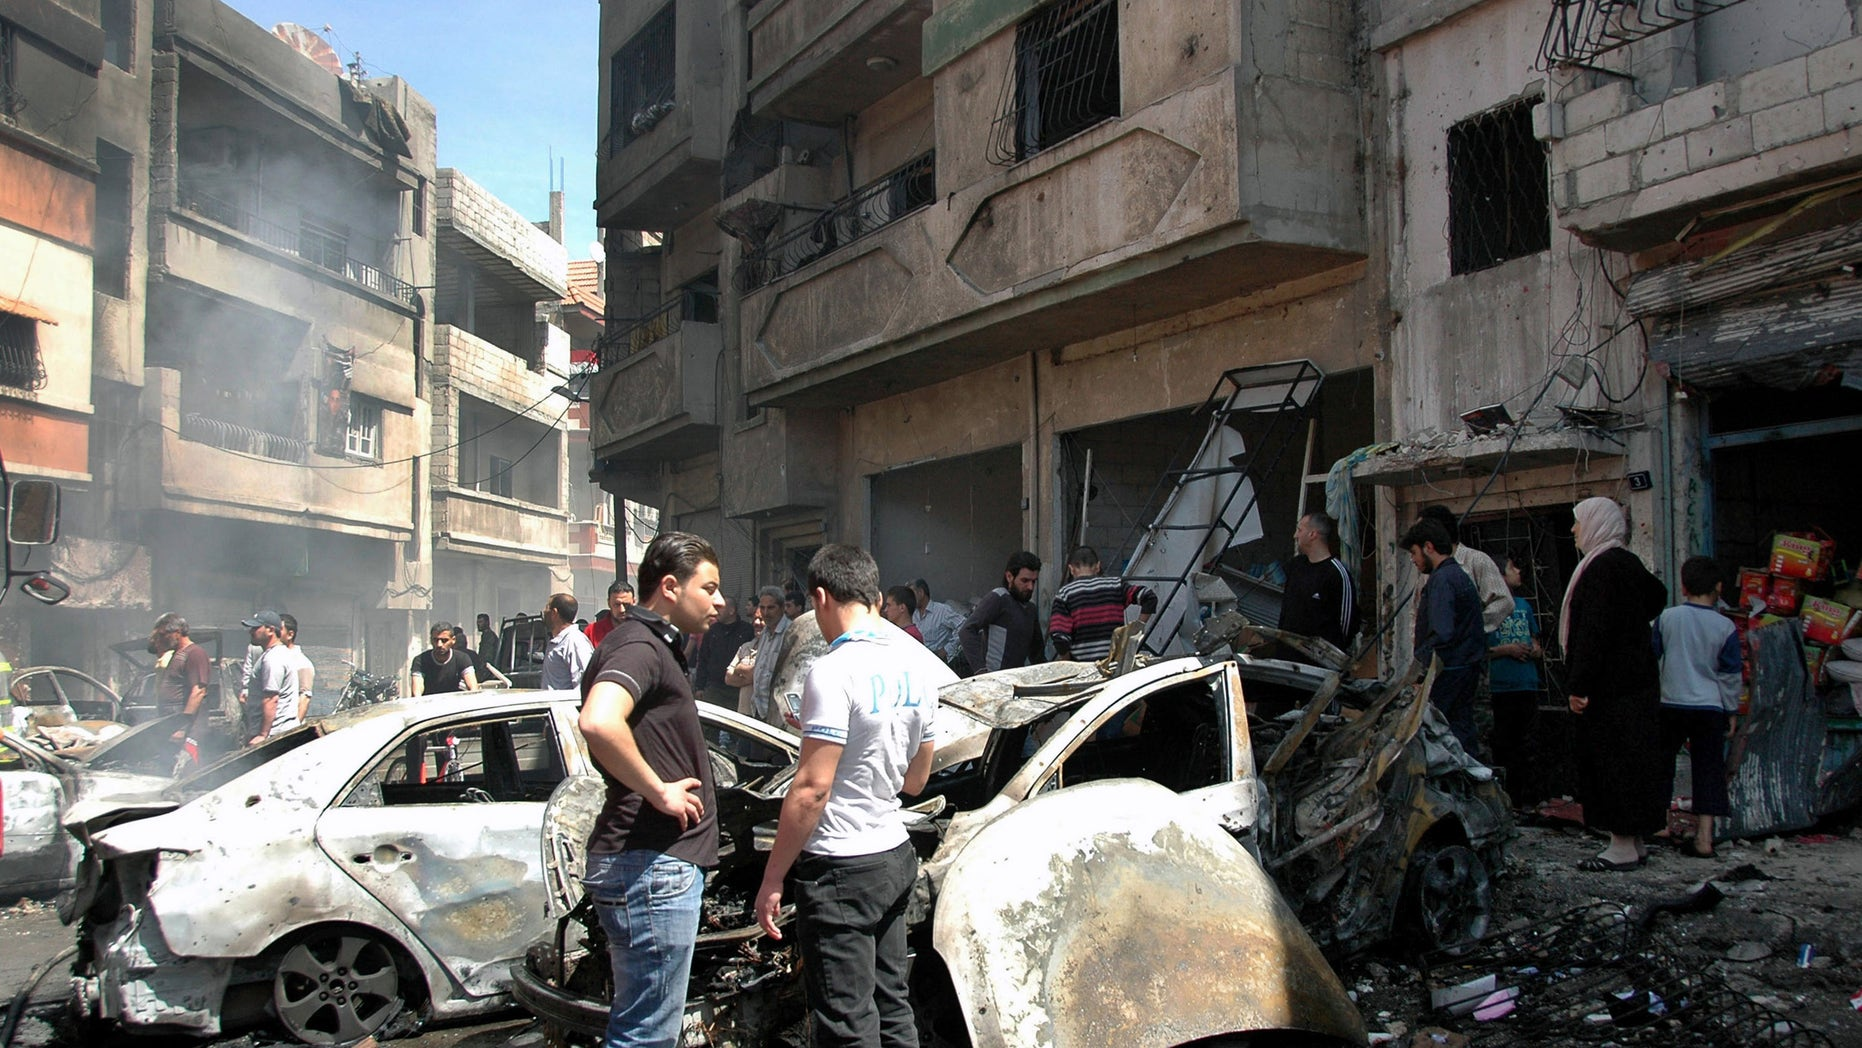 April 29, 2014 - Syrian people gather at the site of one of 2 car bombs that exploded in the pro-government district of Zahra in the central Syrian city of Homs, Syria. Photo provided by Syrian official news agency SANA.